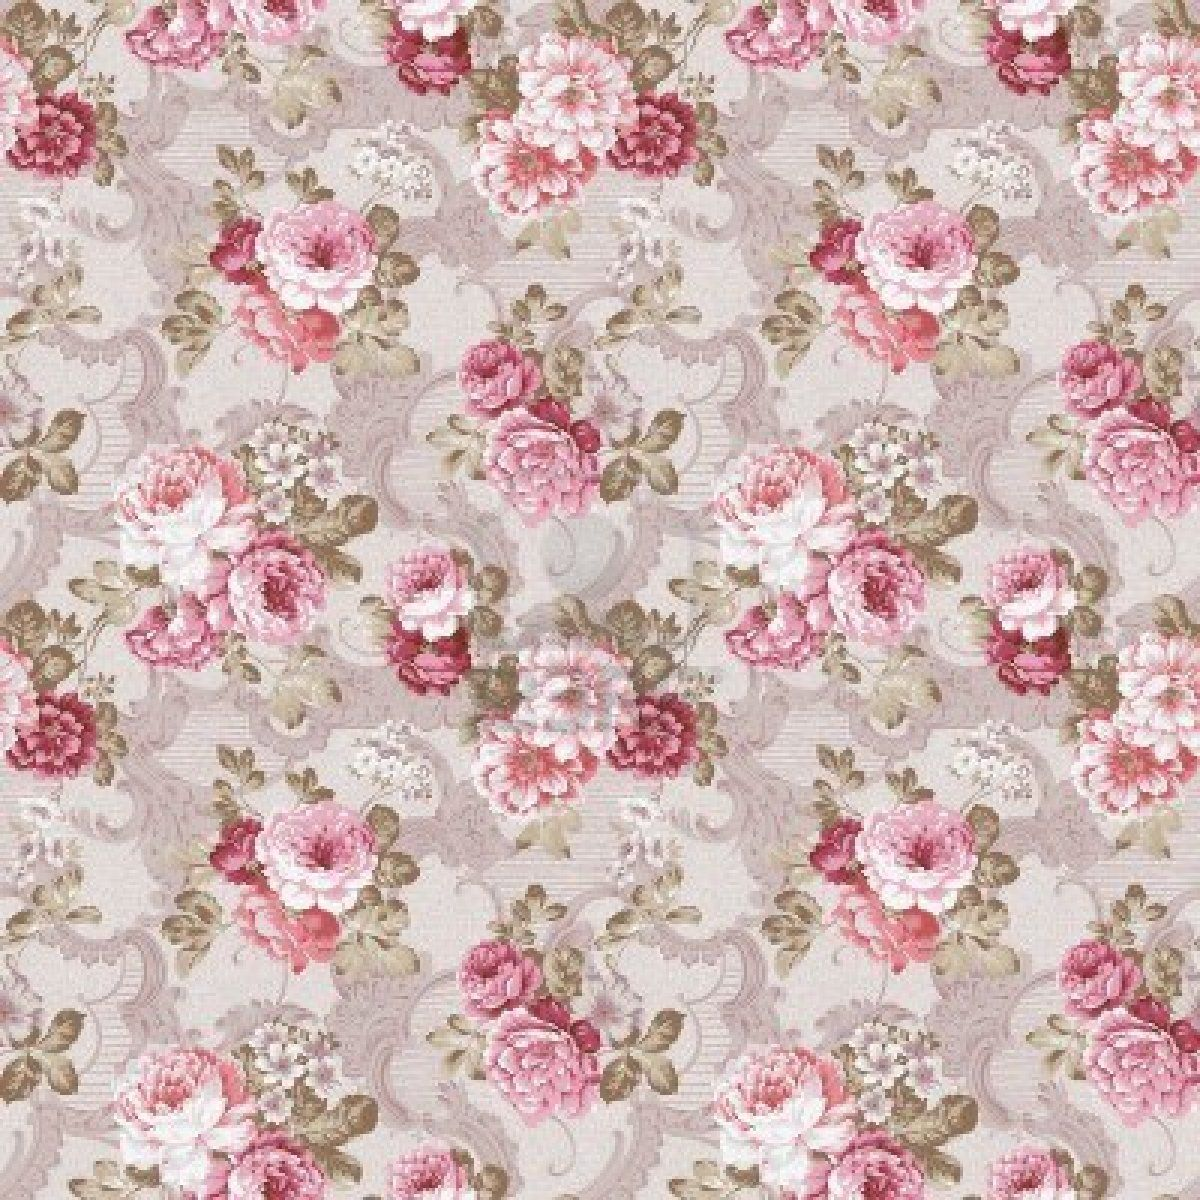 4ft X 4ft Shabby Chic Wallpaper Backdrop For Photography Shoots